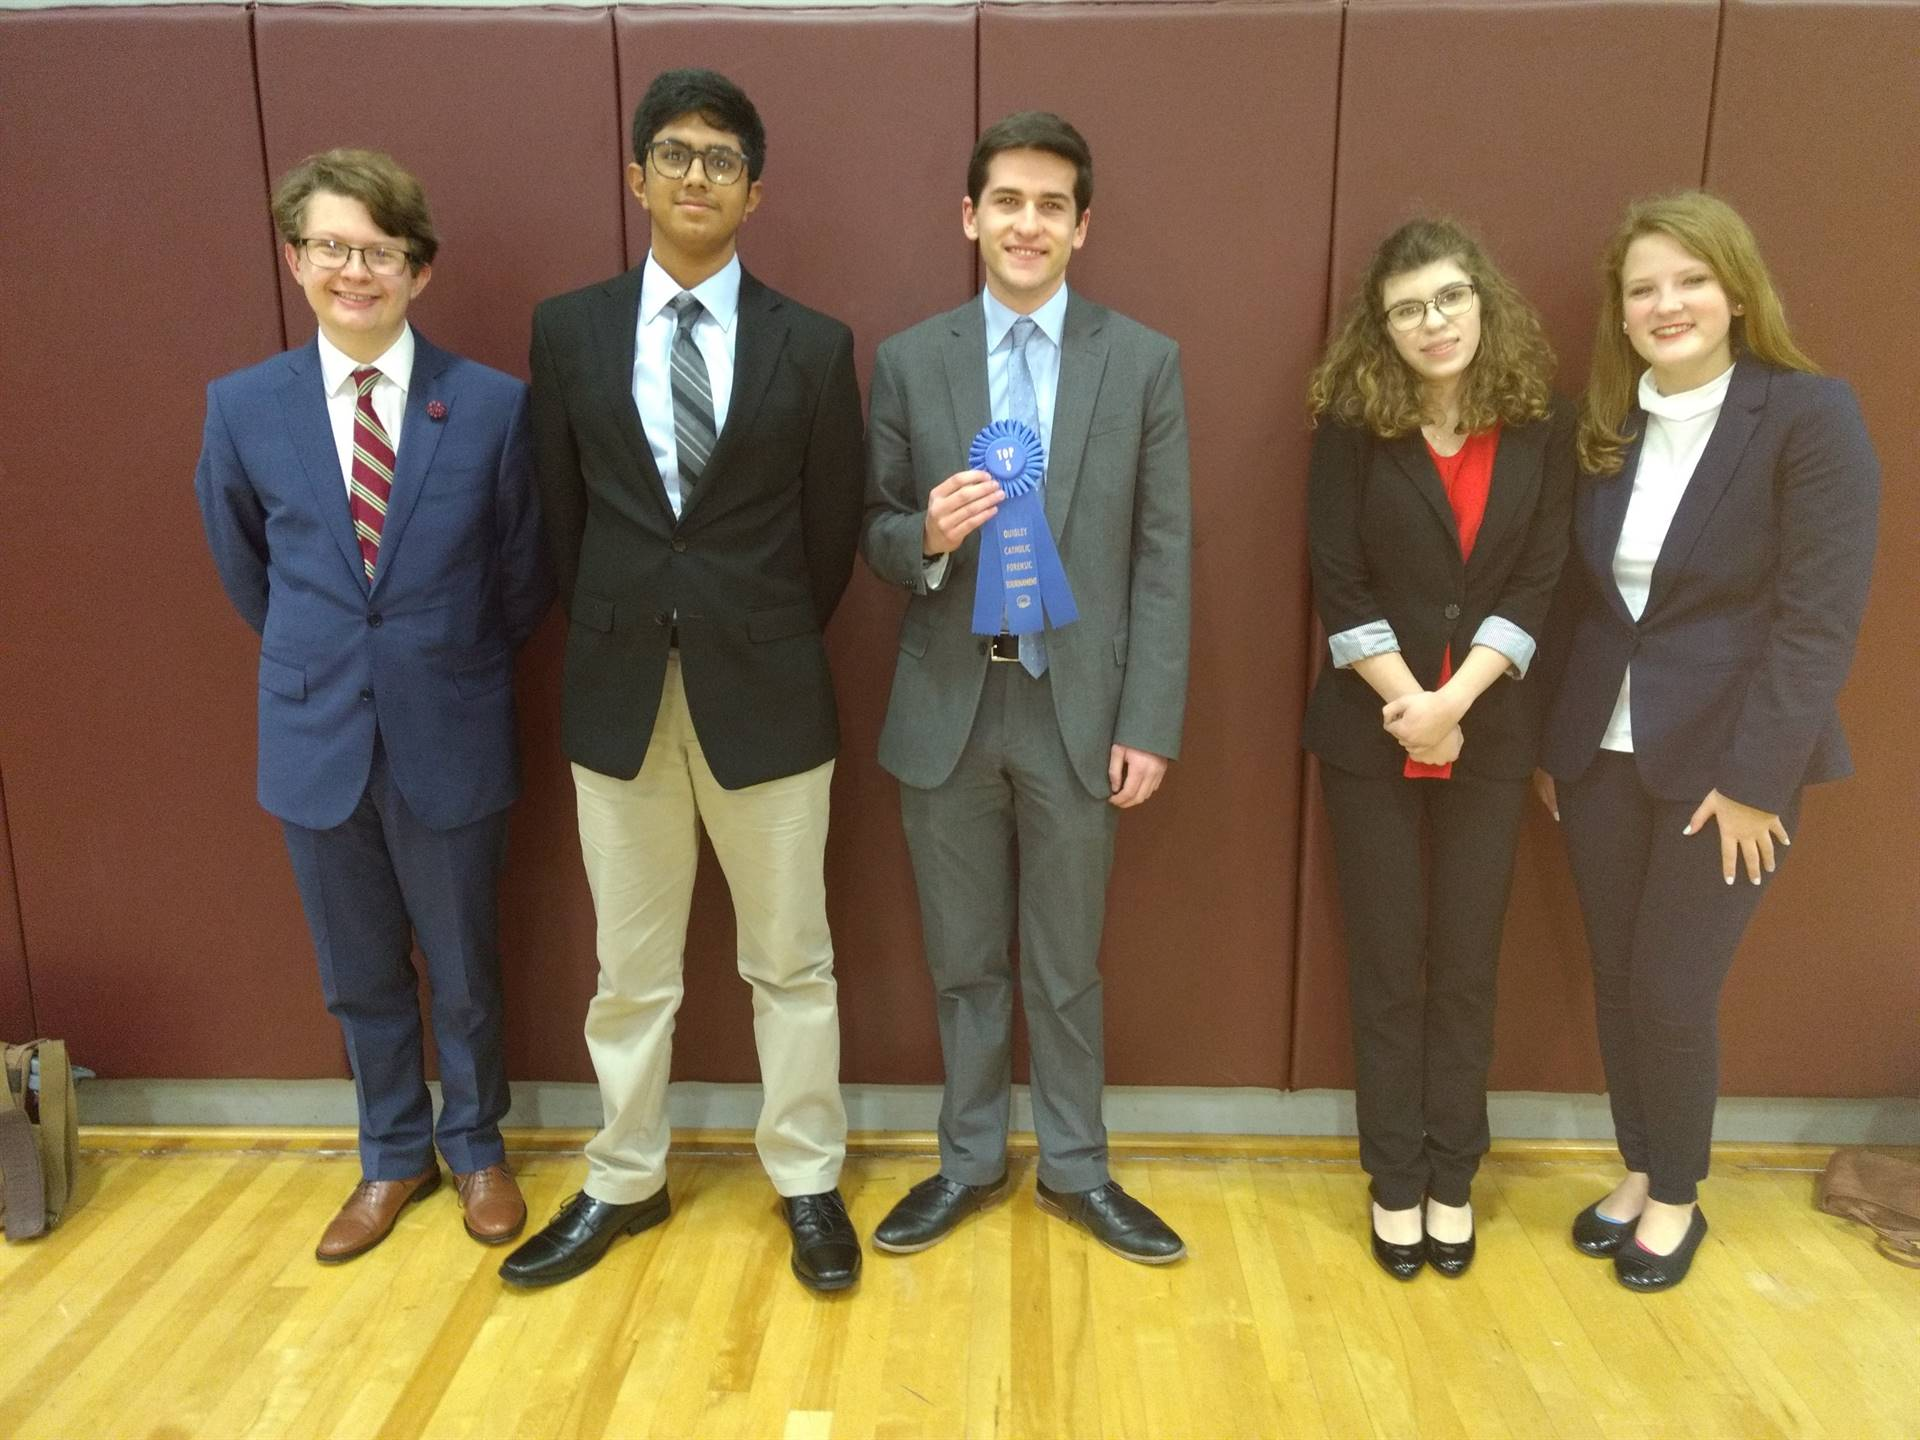 The five competitors at the Quigley Forensics Tournament